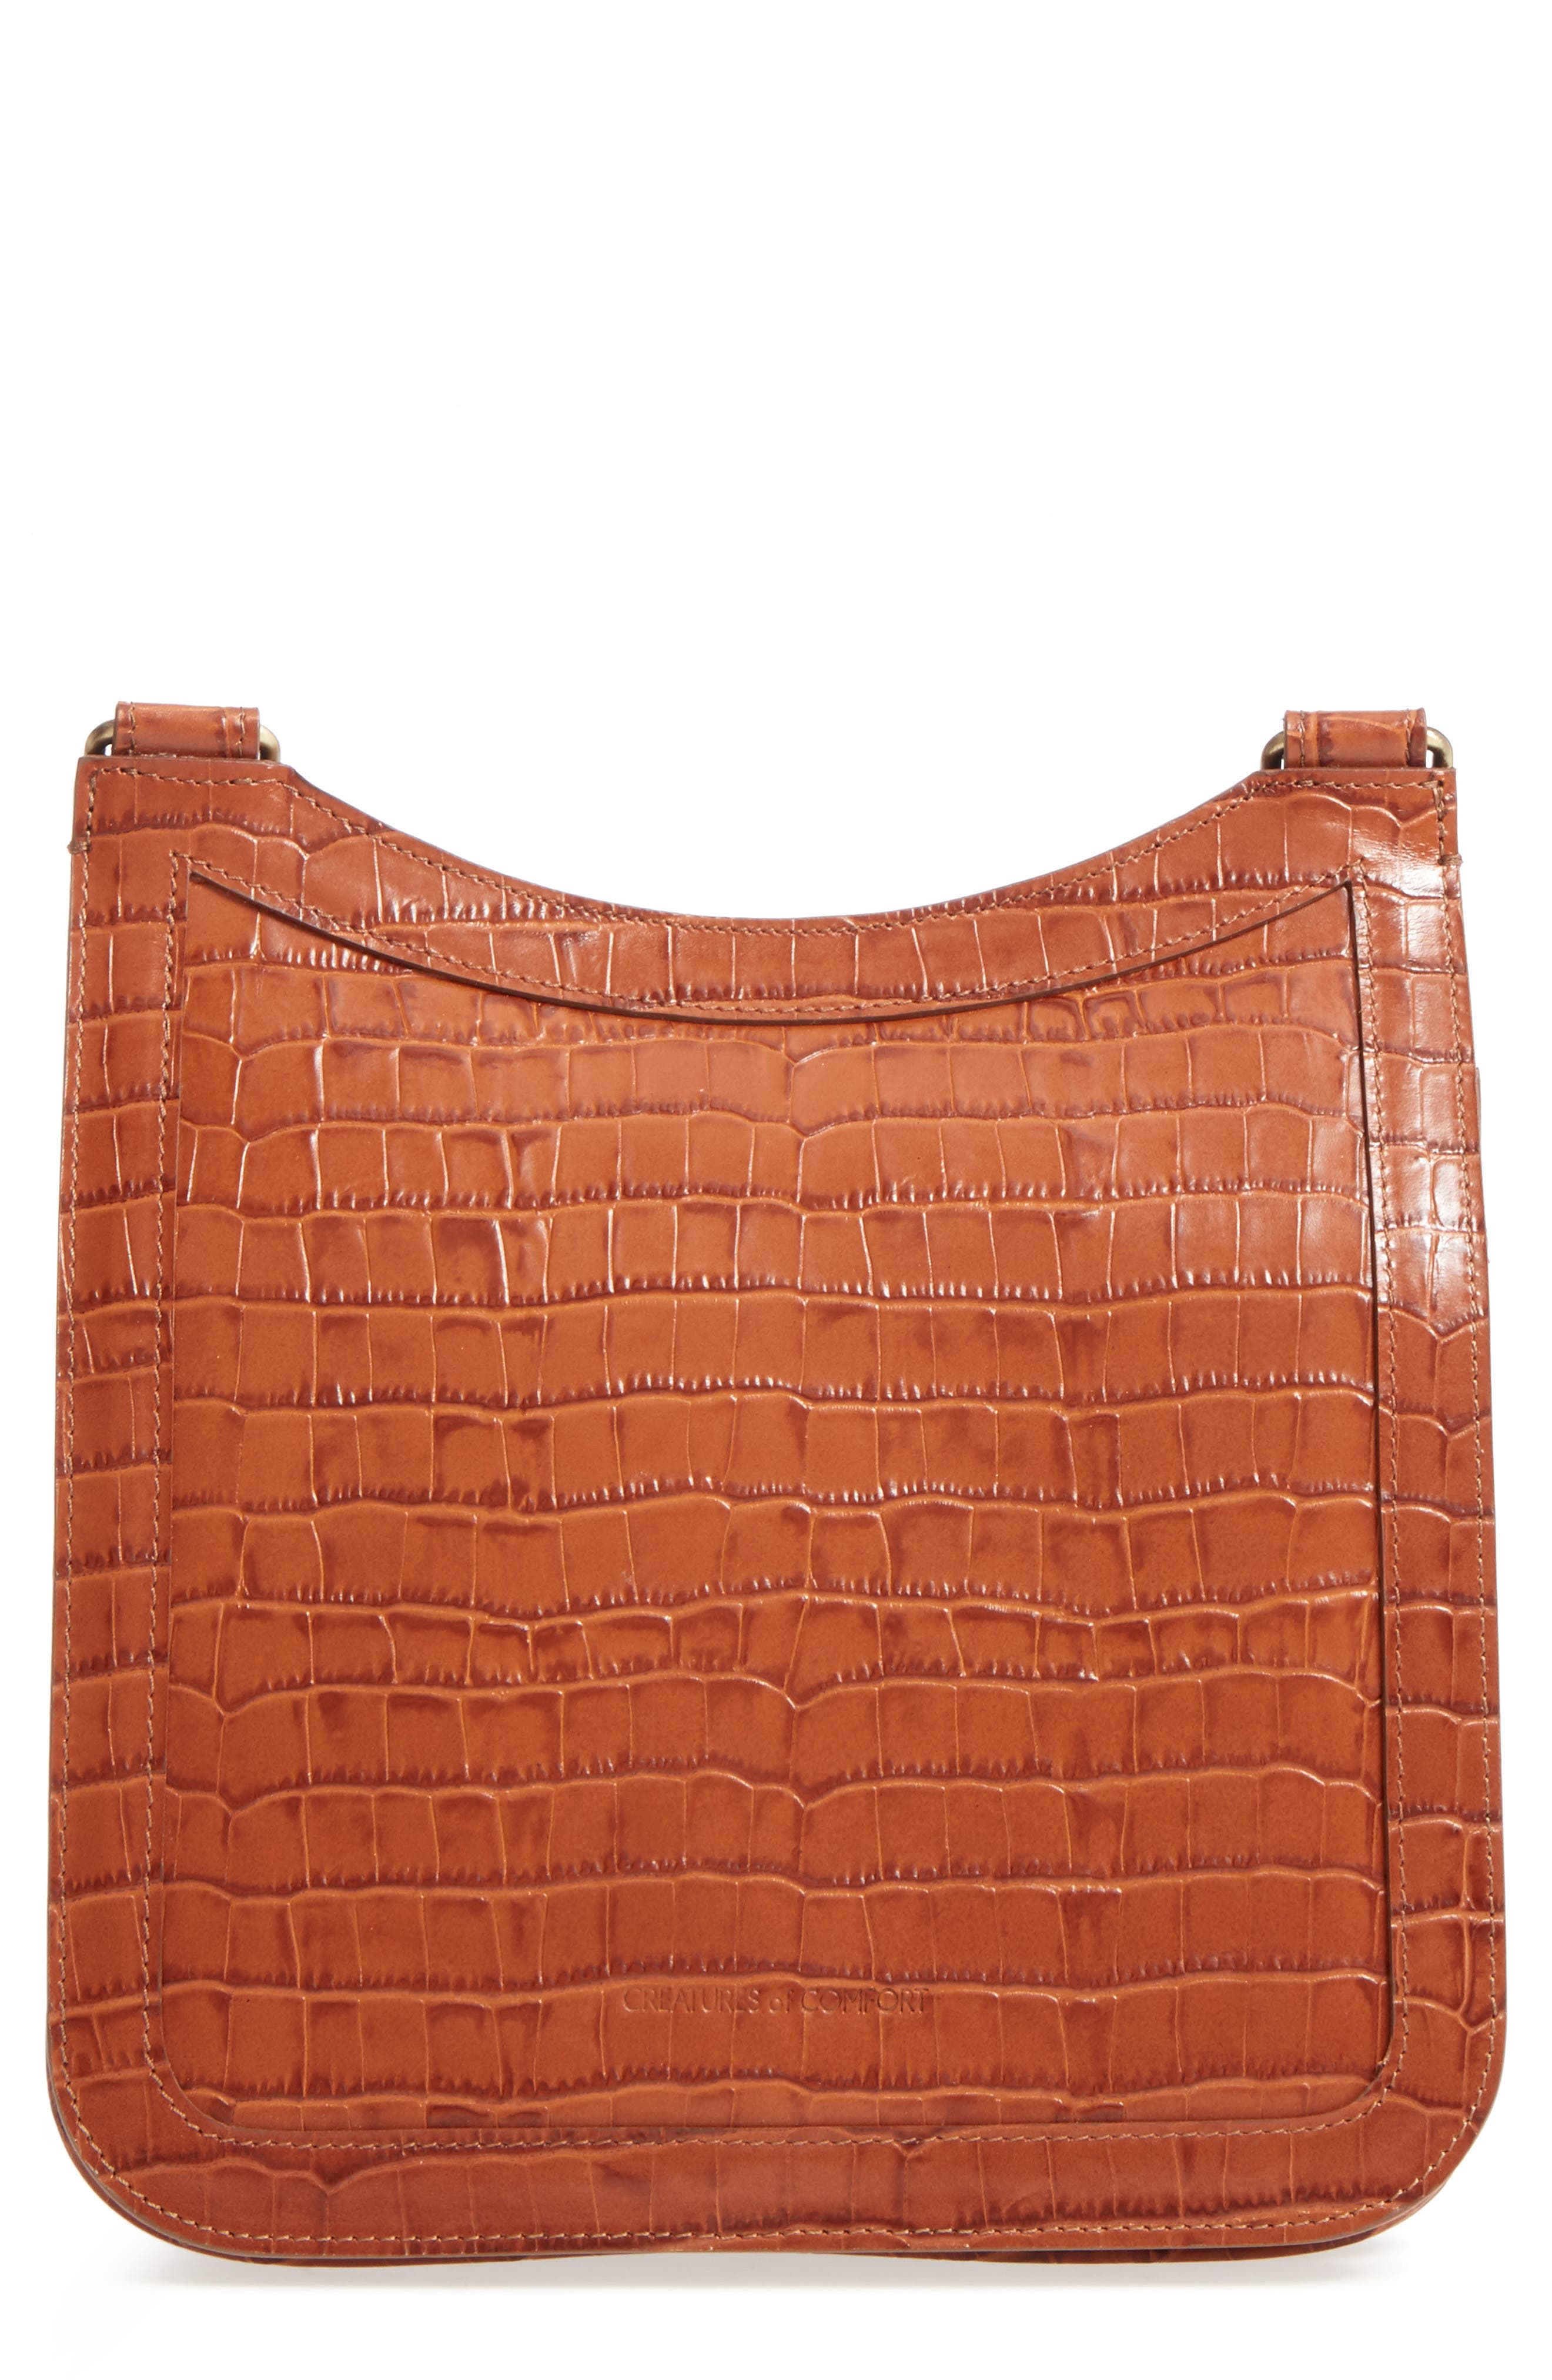 Tall Equestrian Croc Embossed Leather Crossbody Bag,                         Main,                         color, Caramel